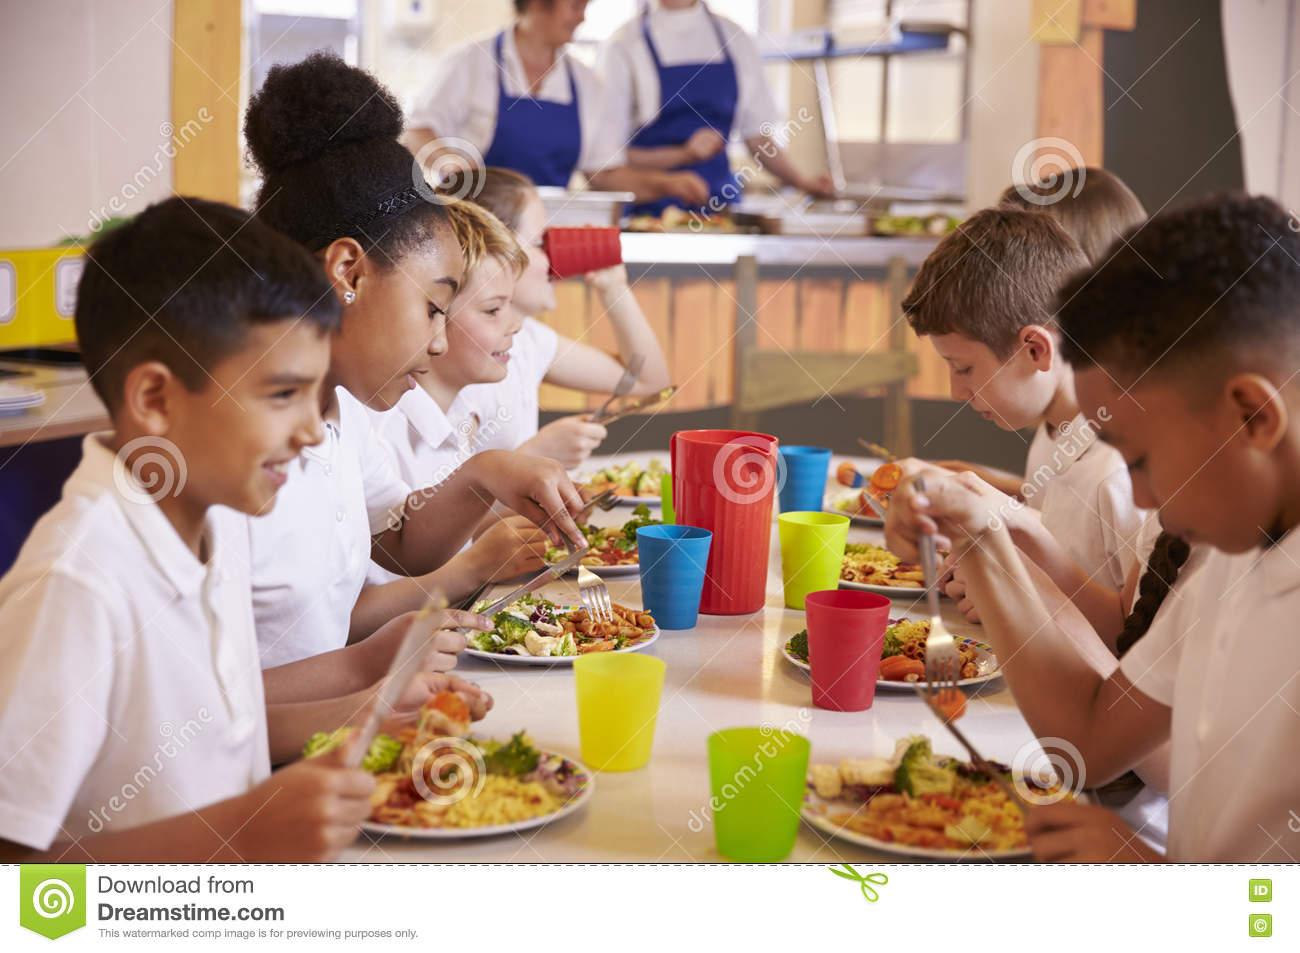 Eating Table Primary School Kids Eating At A Table In School Cafeteria Stock